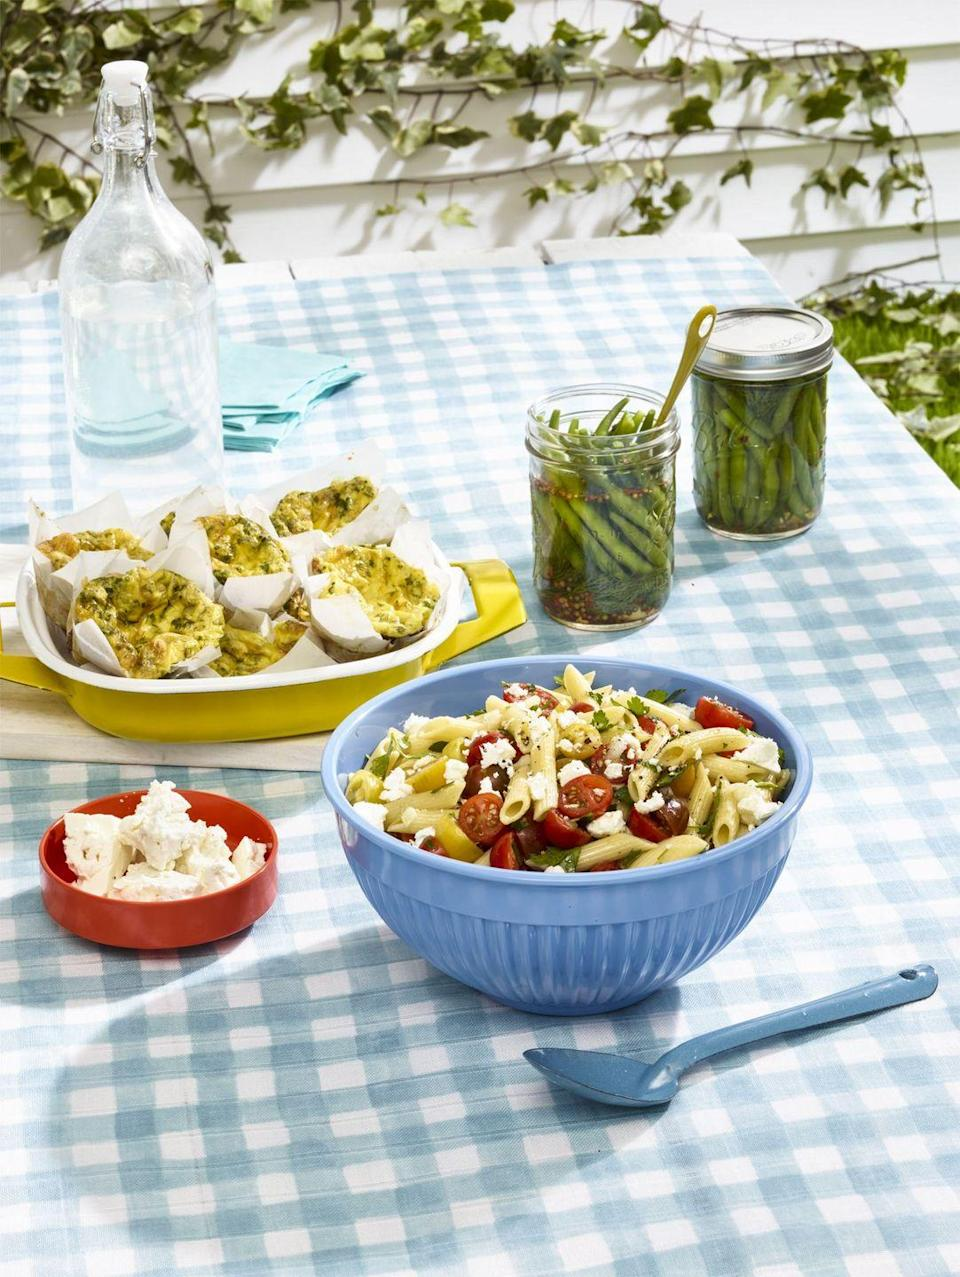 """<p>This pasta salad could be an appetizer or a side dish.</p><p><em><strong><a href=""""https://www.womansday.com/food-recipes/food-drinks/recipes/a55303/marinated-tomato-pasta-salad-recipe/"""" rel=""""nofollow noopener"""" target=""""_blank"""" data-ylk=""""slk:Get the Marinated Tomato Pasta Salad recipe."""" class=""""link rapid-noclick-resp"""">Get the Marinated Tomato Pasta Salad recipe.</a></strong></em></p>"""